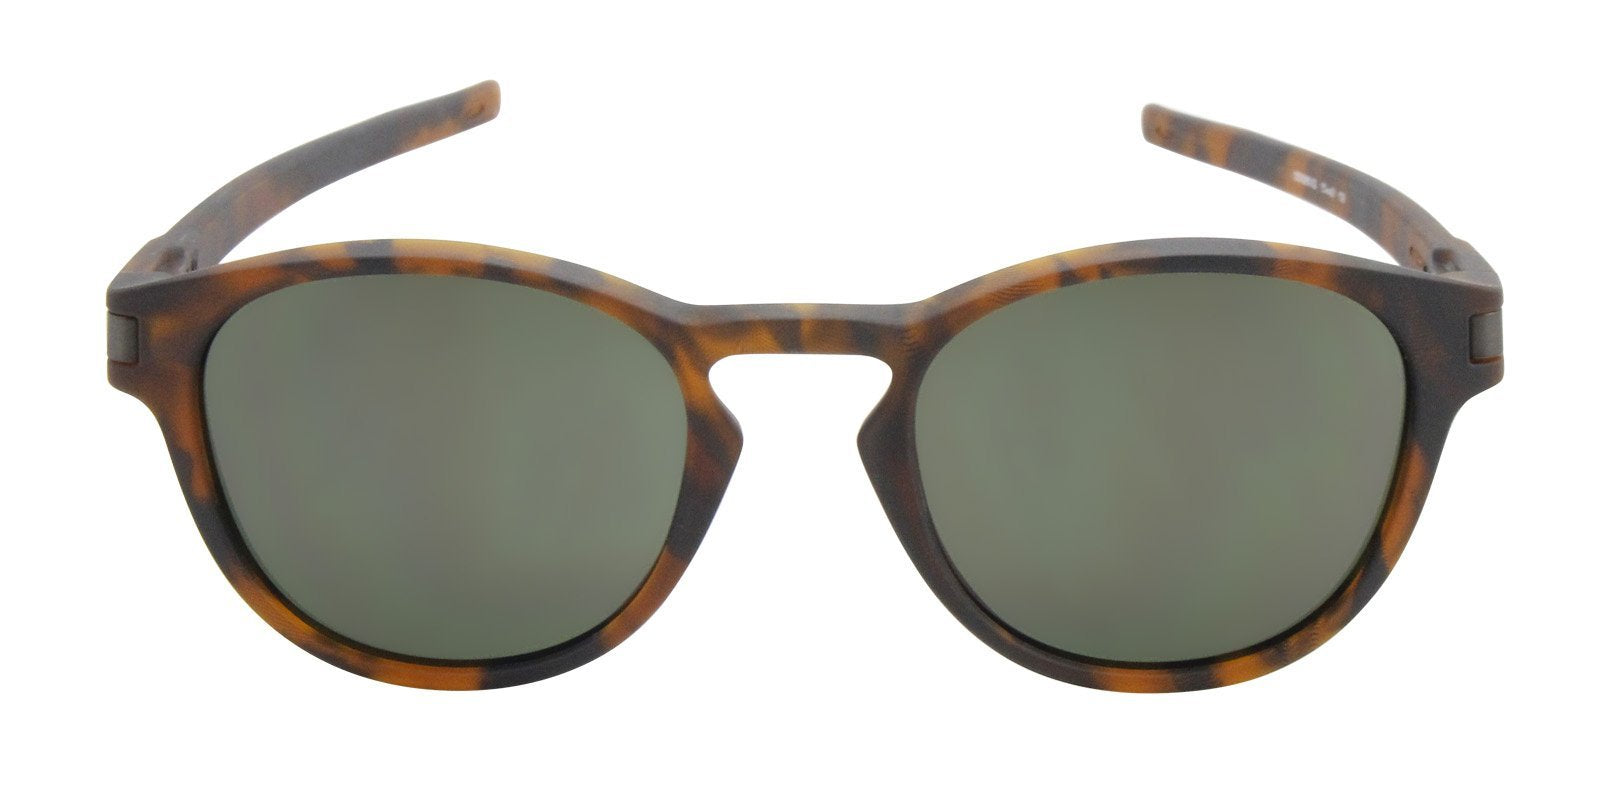 Oakley - Latch Tortoise/Green Oval Unisex Sunglasses - 53mm-Sunglasses-Designer Eyes